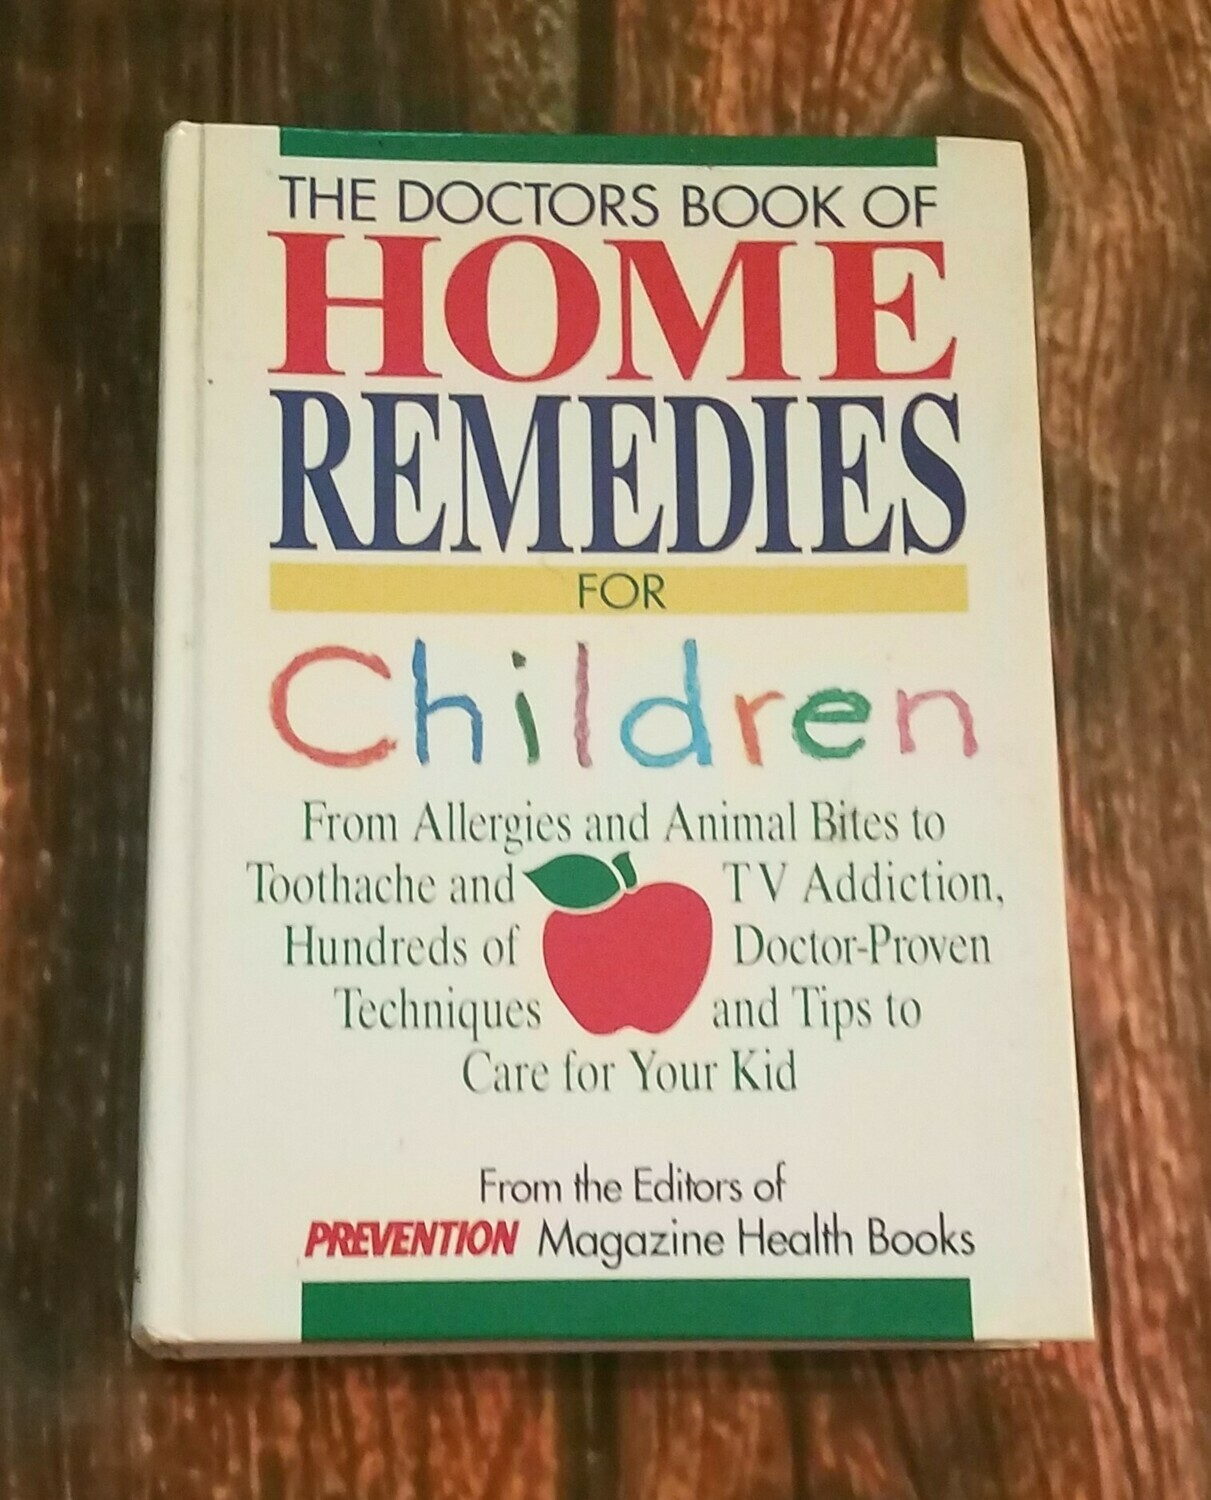 Home Remedies for Children by Denise Foley, Eileen Nechas, Susan Perry, and Dena K. Salmon